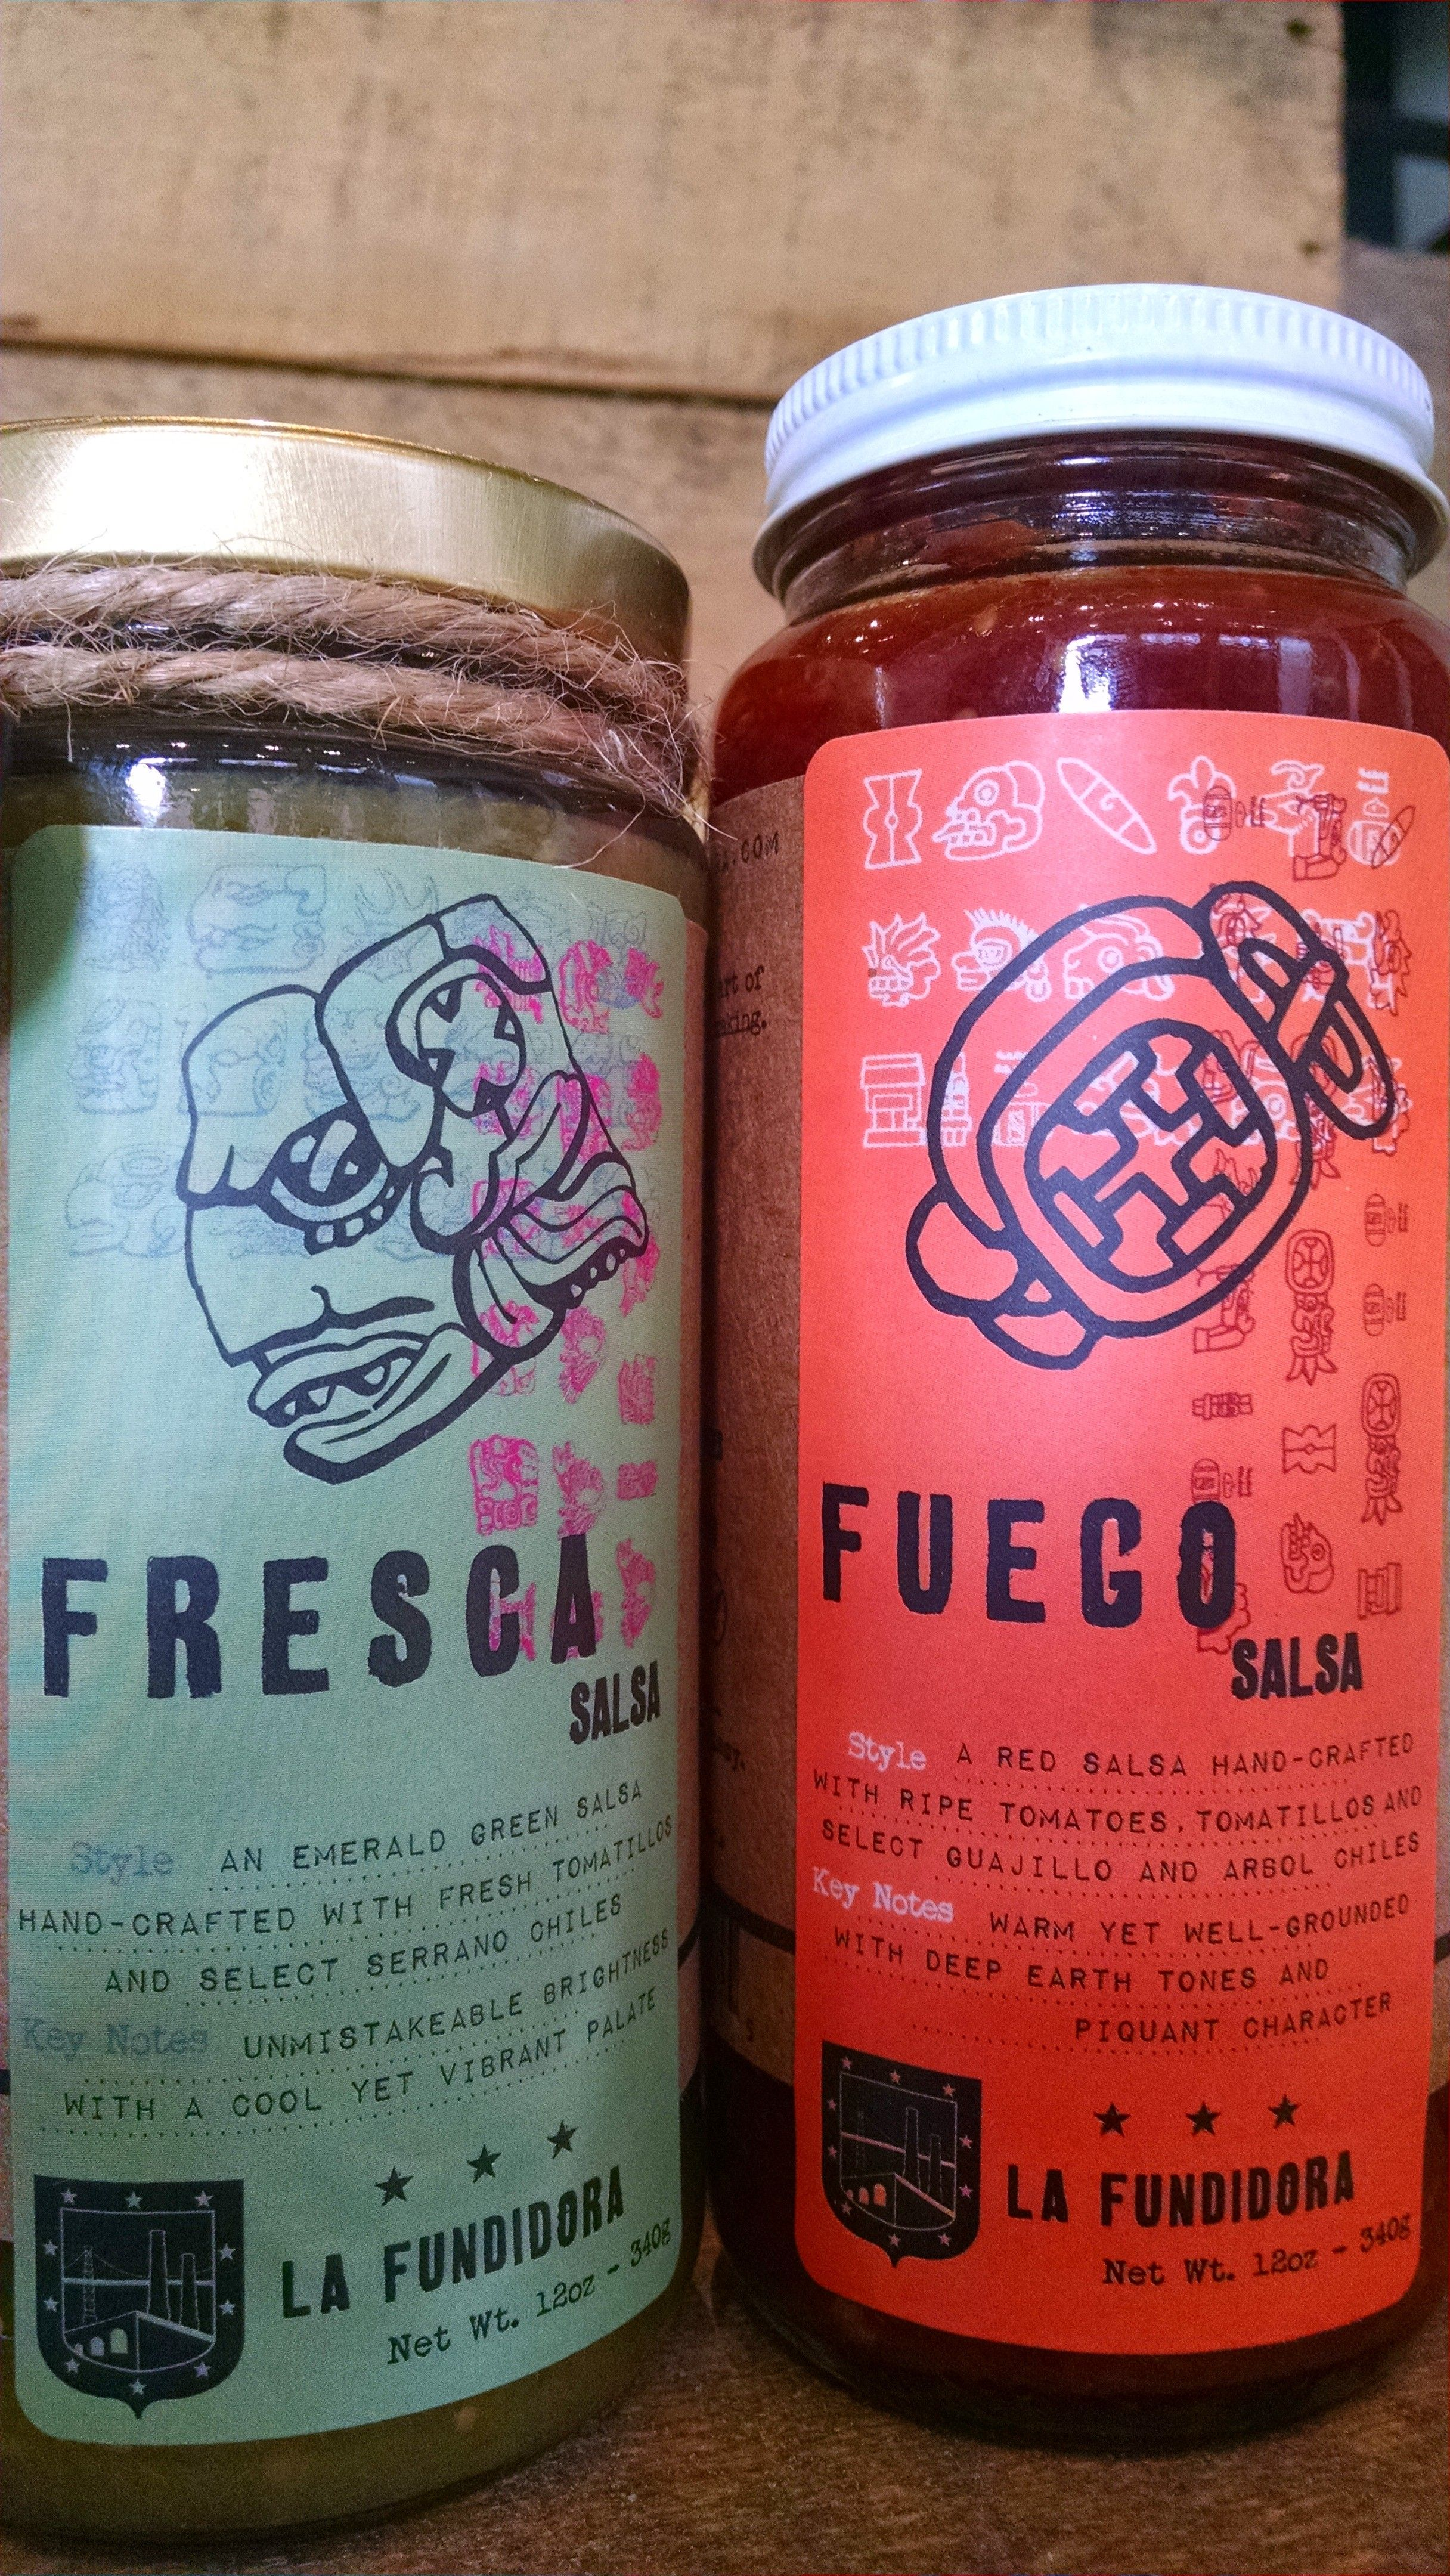 Sometimes radically different looks fit into one consistent brand look, like these salsas from La Fundidora. Consistent motifs, communication and design style clearly set these two jars apart.